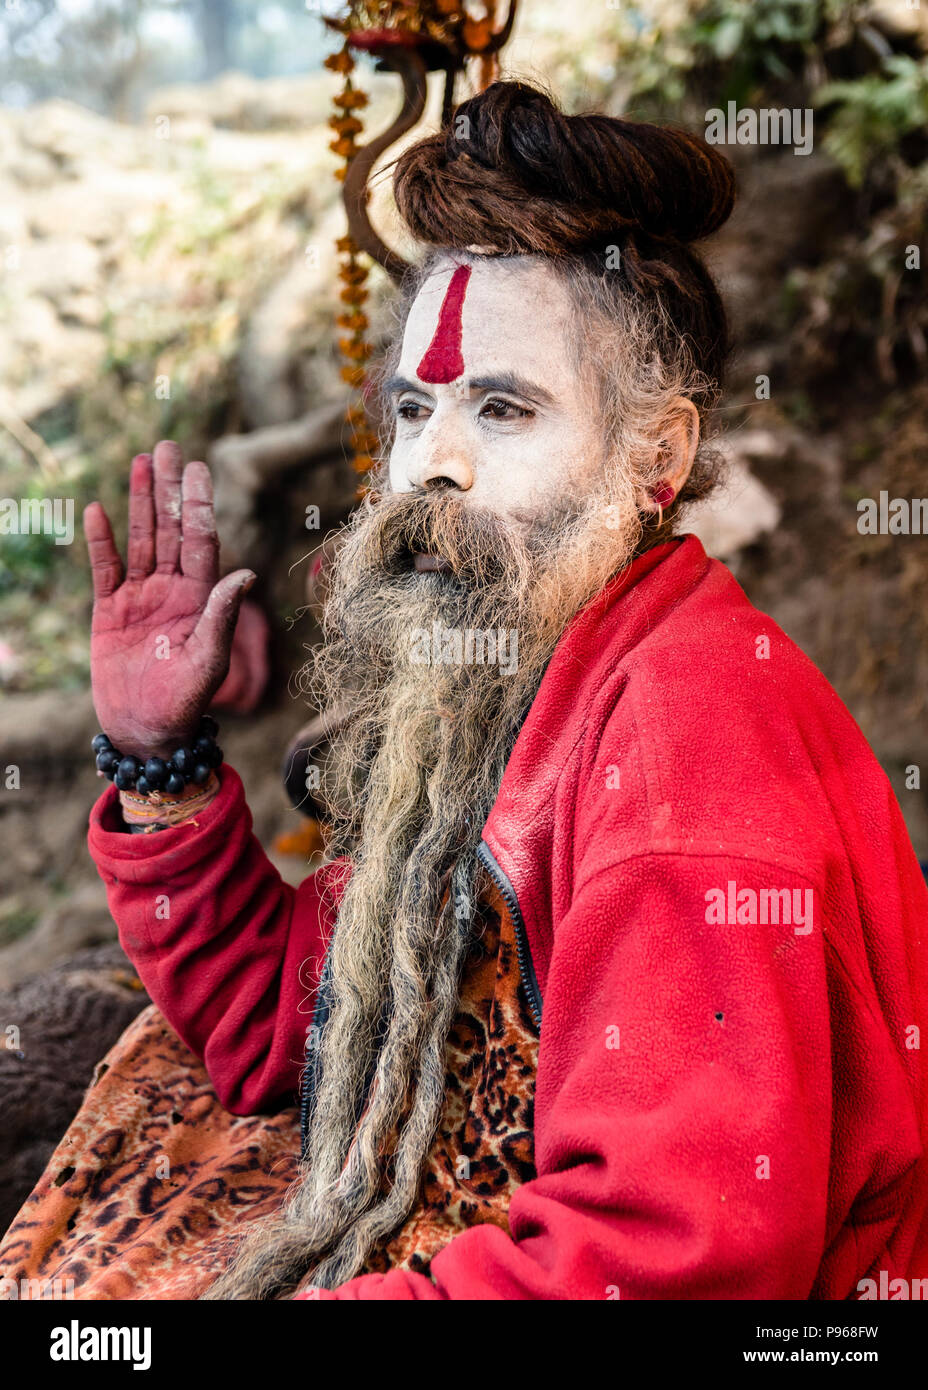 Sadhu posing for devotees during the traditional Hindu festival Maha Shivaratri in the vicinity of Pashupatinath temple in Kathmandu, Nepal - Stock Image